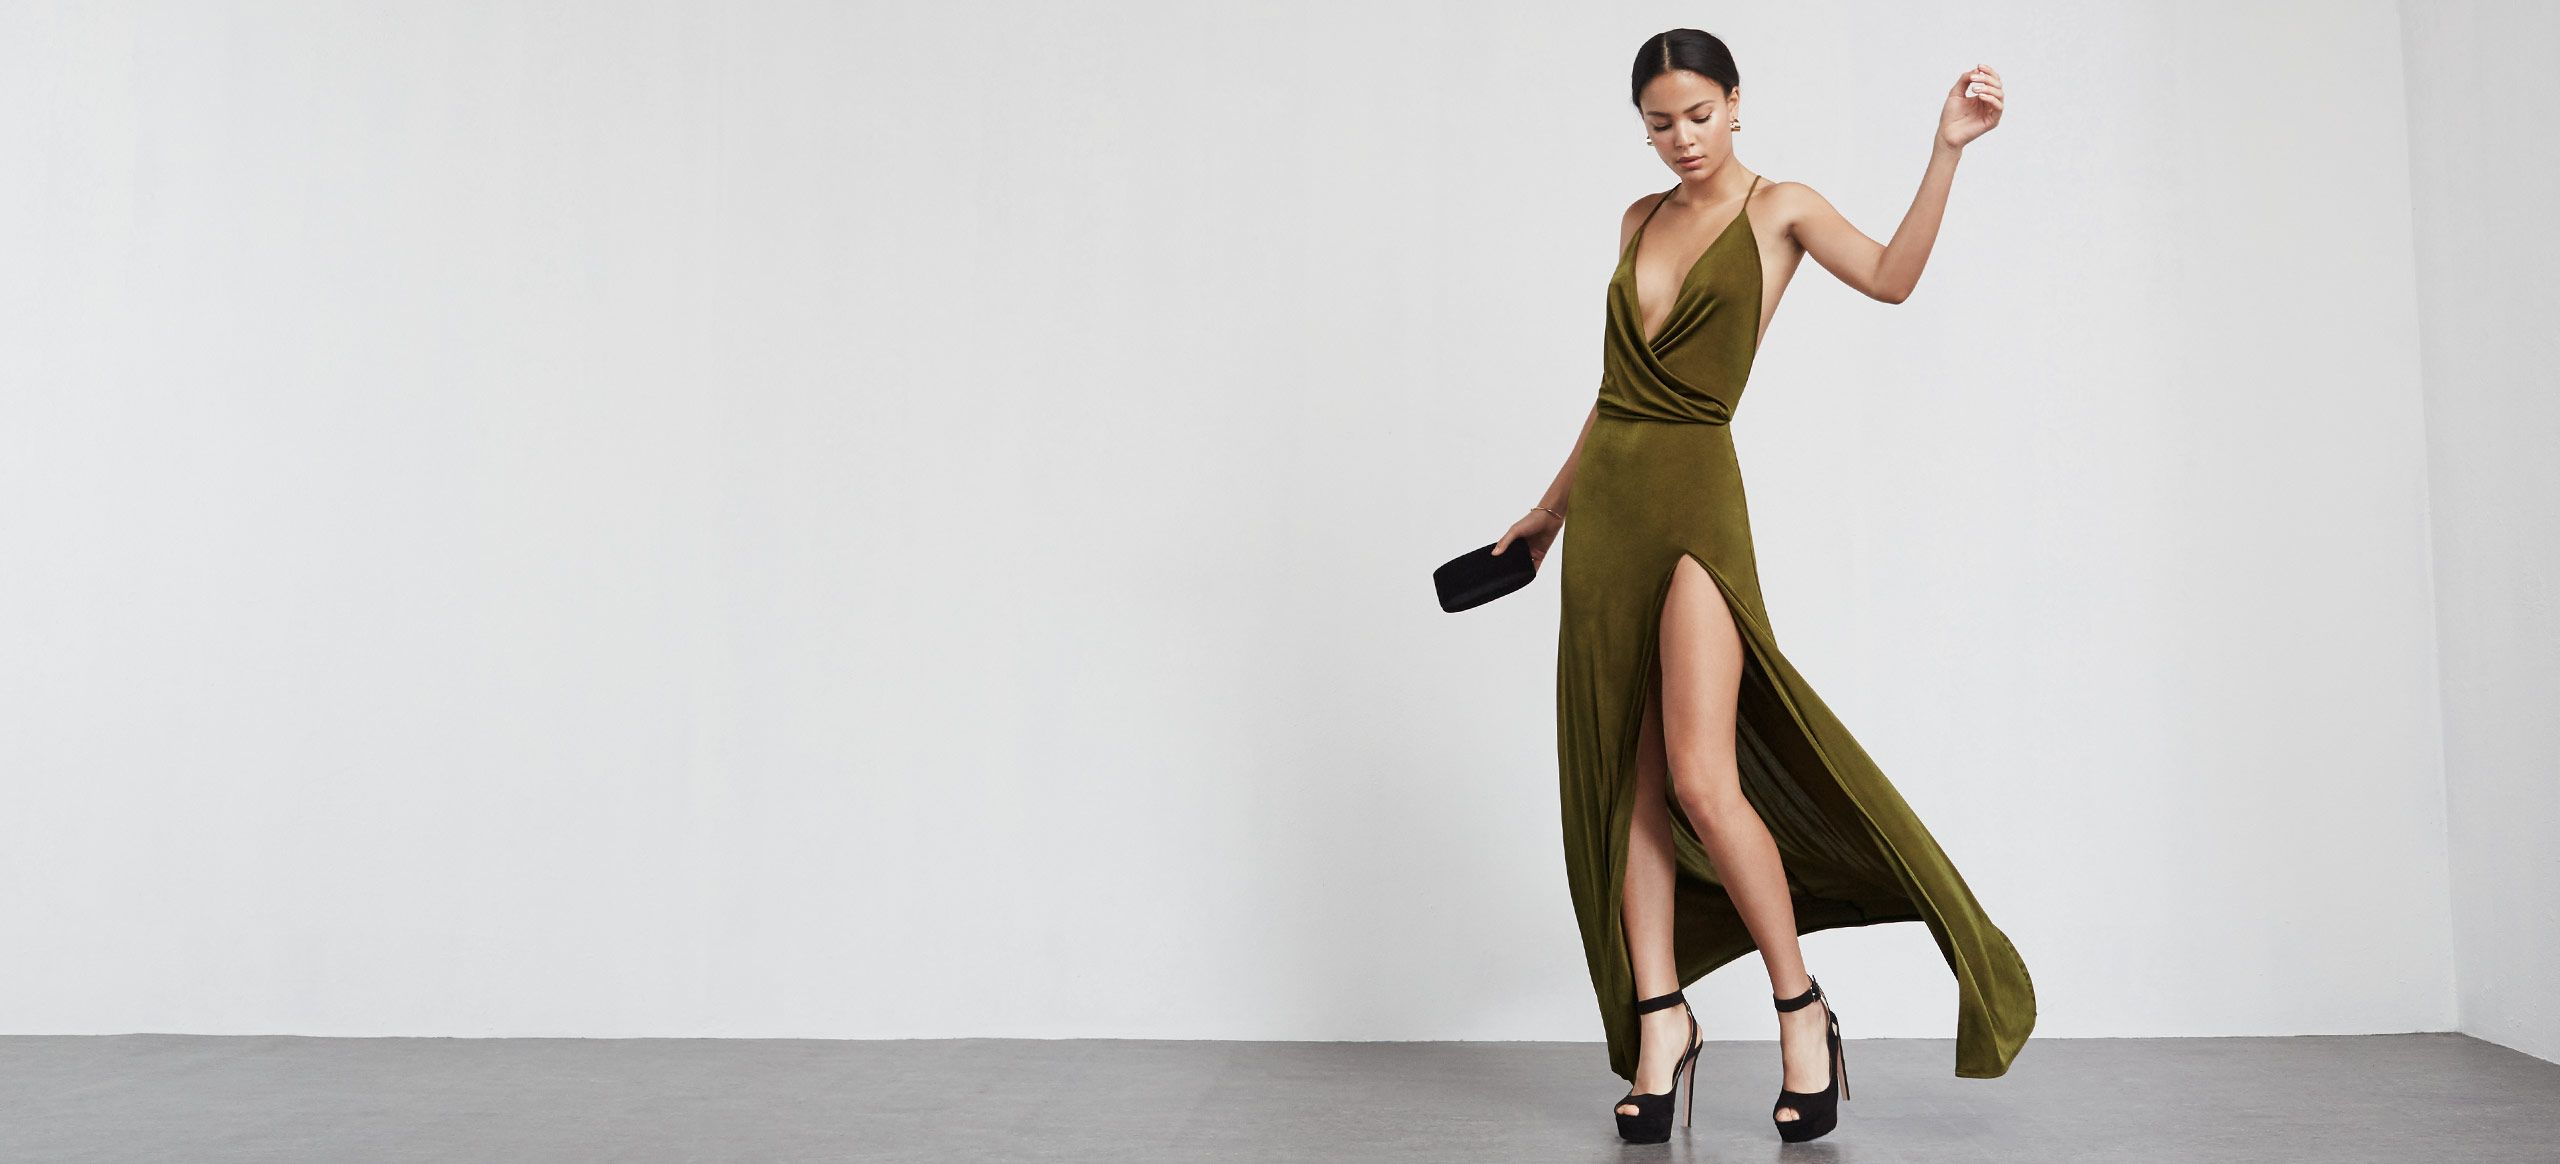 This is part of the Reformation x 4th and Bleeker NYE collection. The Martini Dress is a slinky, stretch matte jersey maxi dress with a plunging wrap neckline that drapes along the chest. High front slit, open back with criss cross straps. Fitted through the elastic waist and down the skirt, skims the body in all the right places. Made from surplus fabric.